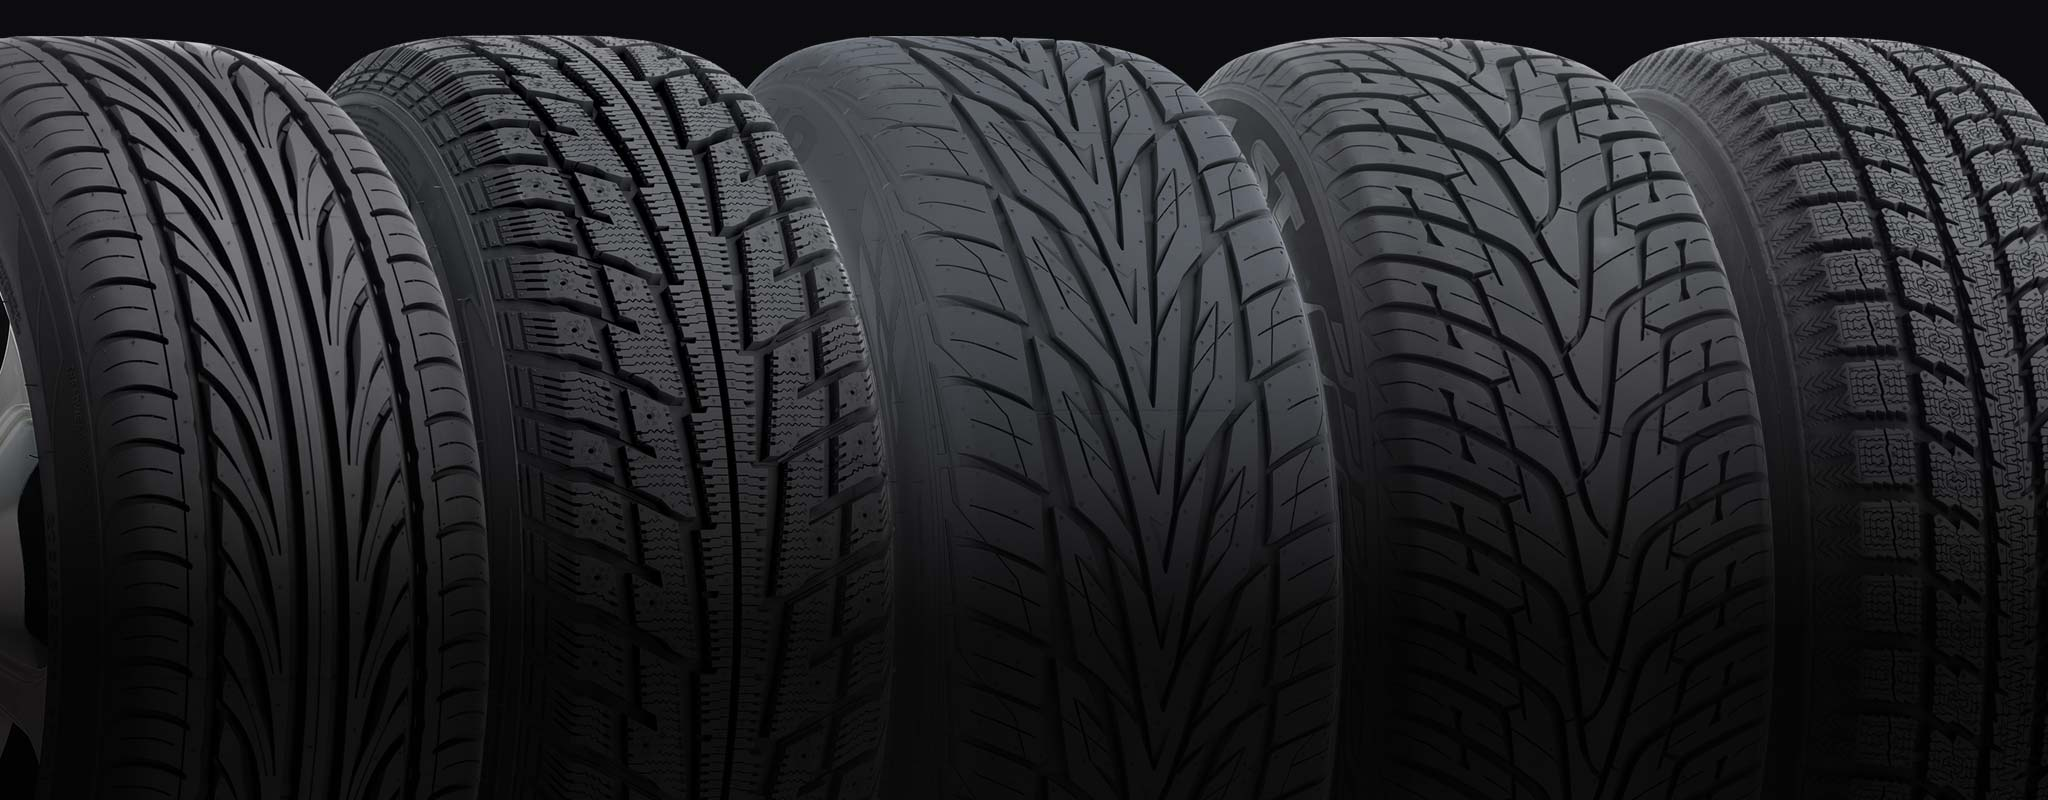 A set of directional tires with different tread designs lined up.